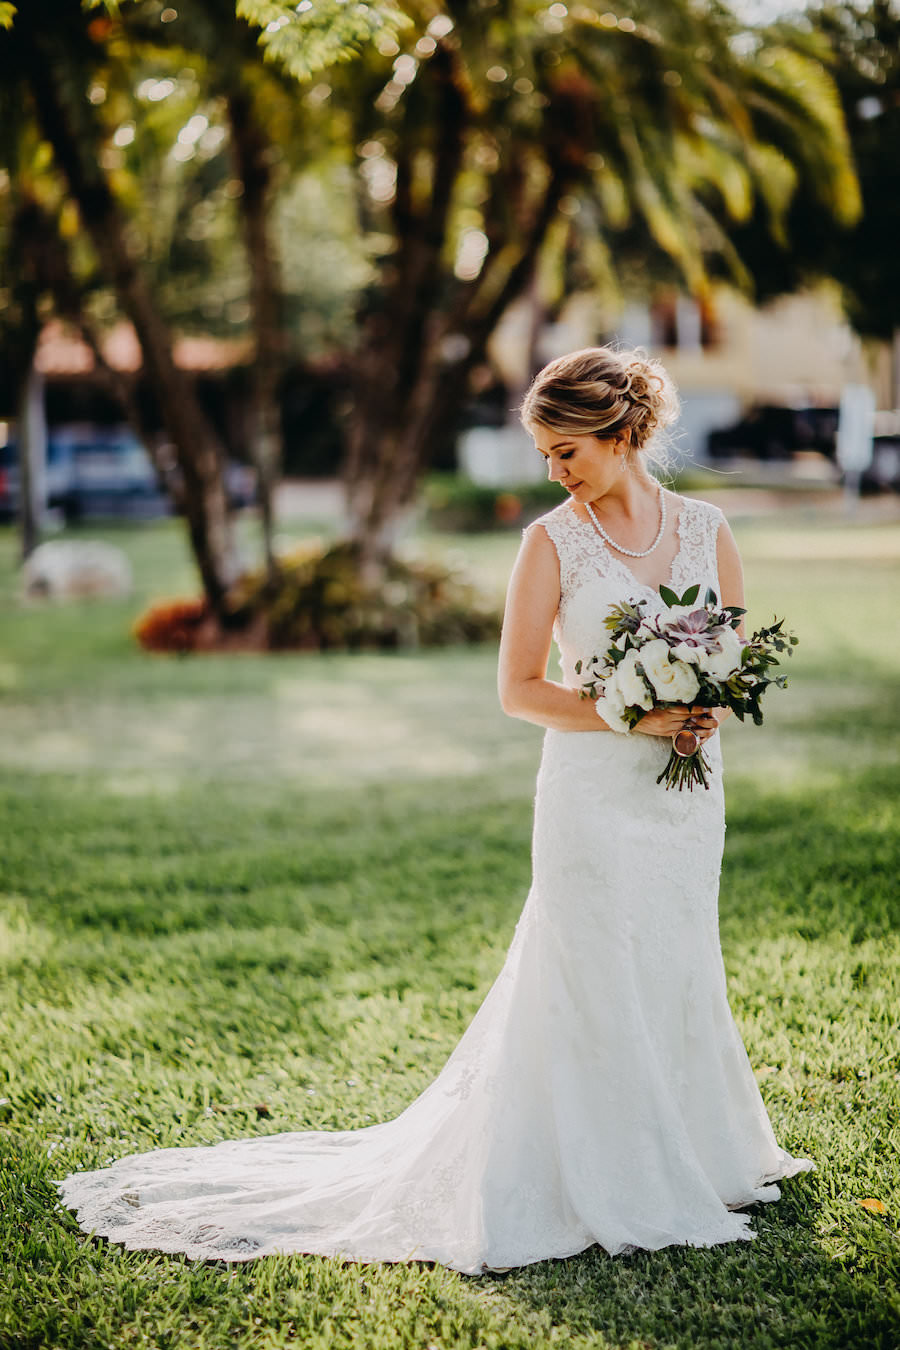 Bride Wedding Garden Portrait Wearing Maggie Sottero Lace Wedding Dress with White and Purple Bouquet with Greenery   Tampa Bay Wedding Photographer Rad Red Creative